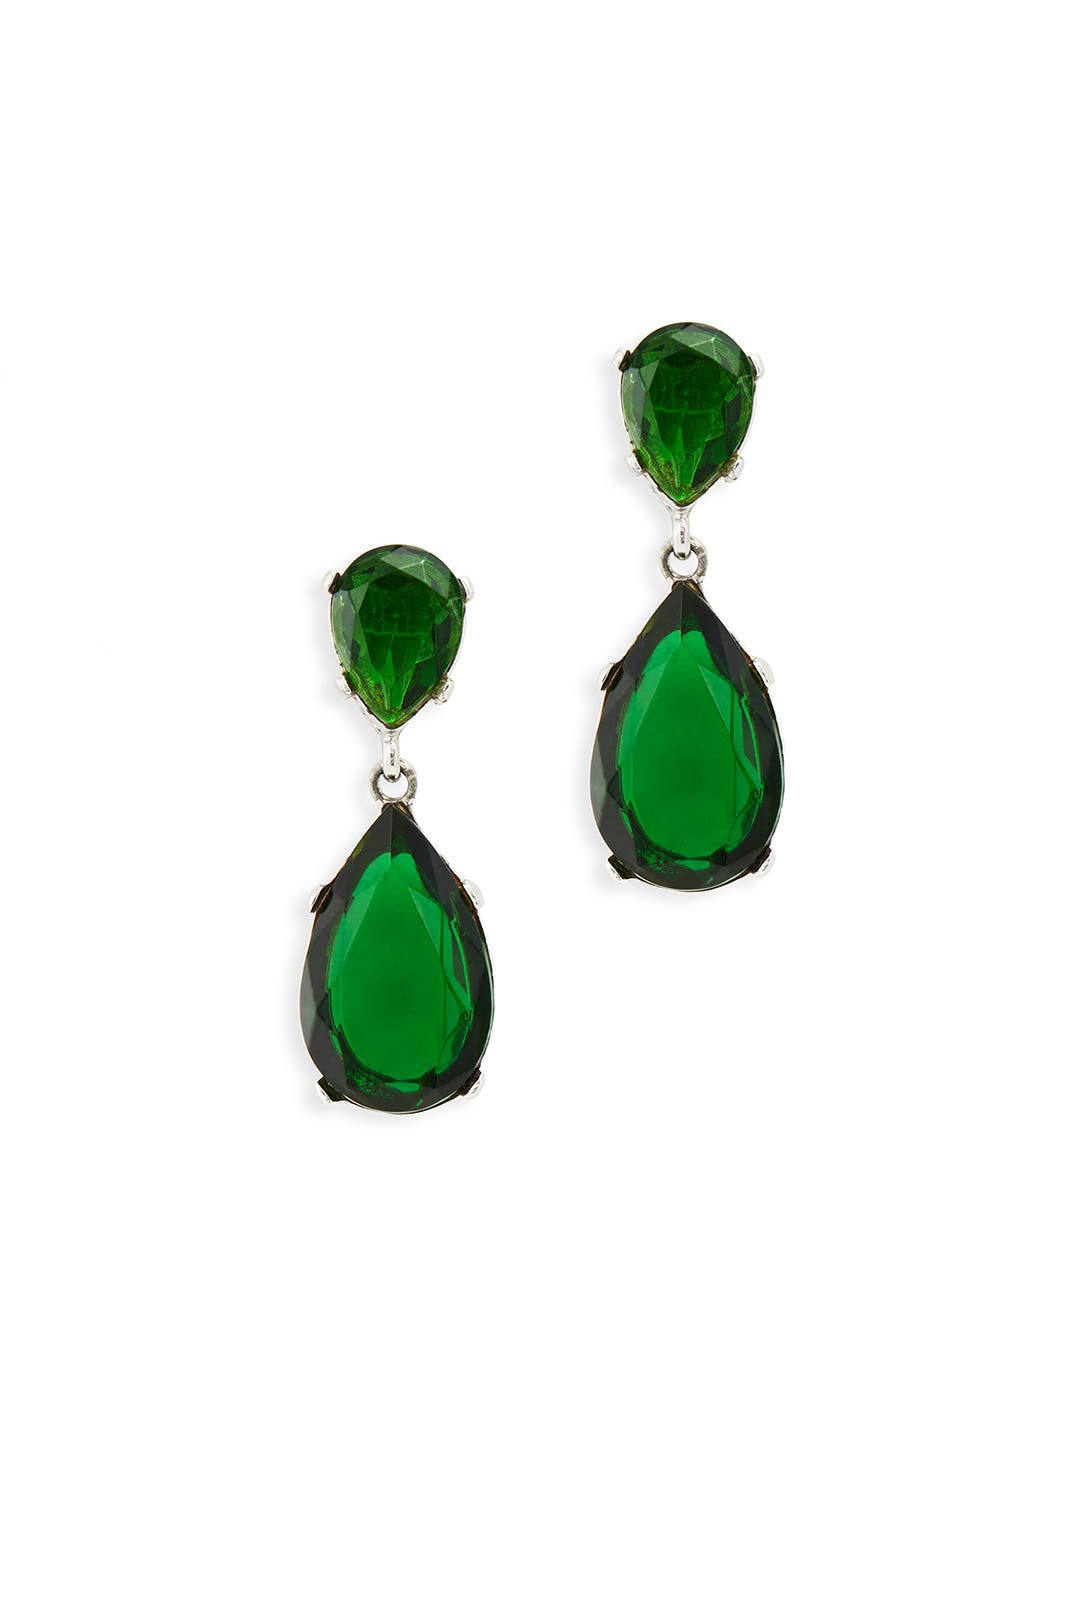 f5af1fe6a Emerald Drop Earrings by Kenneth Jay Lane for $57 - Page 3 | Rent ...